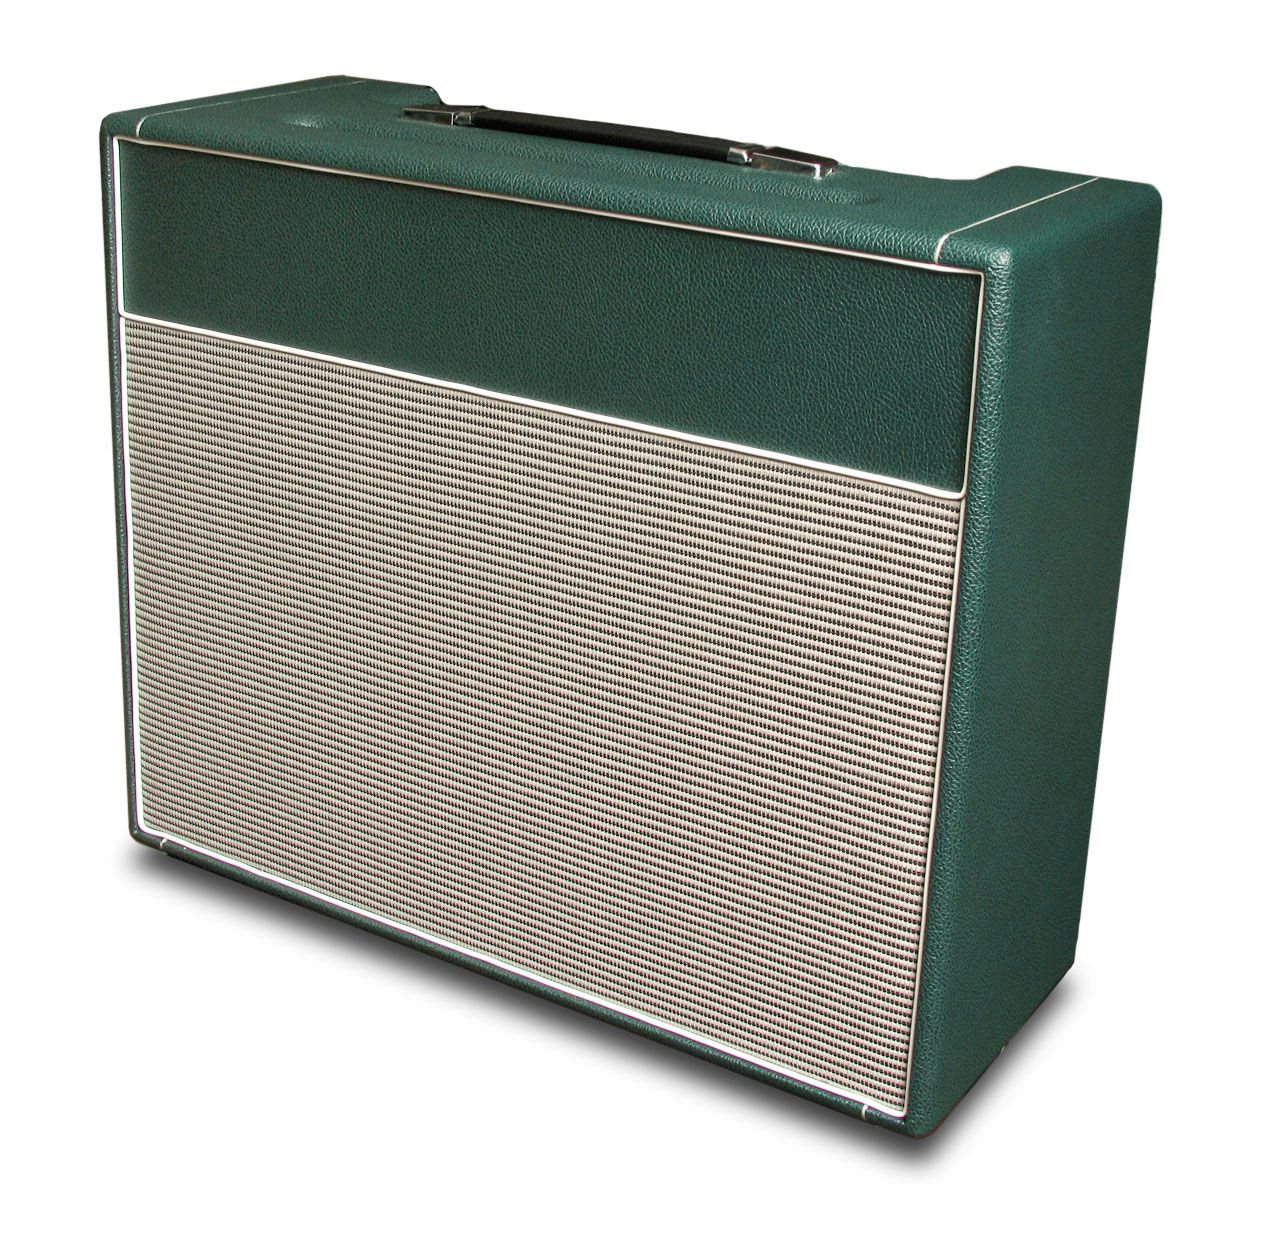 weber tube amp kits marshall 18mtmb and fender tweed deluxe circuits built by me guitar amp. Black Bedroom Furniture Sets. Home Design Ideas